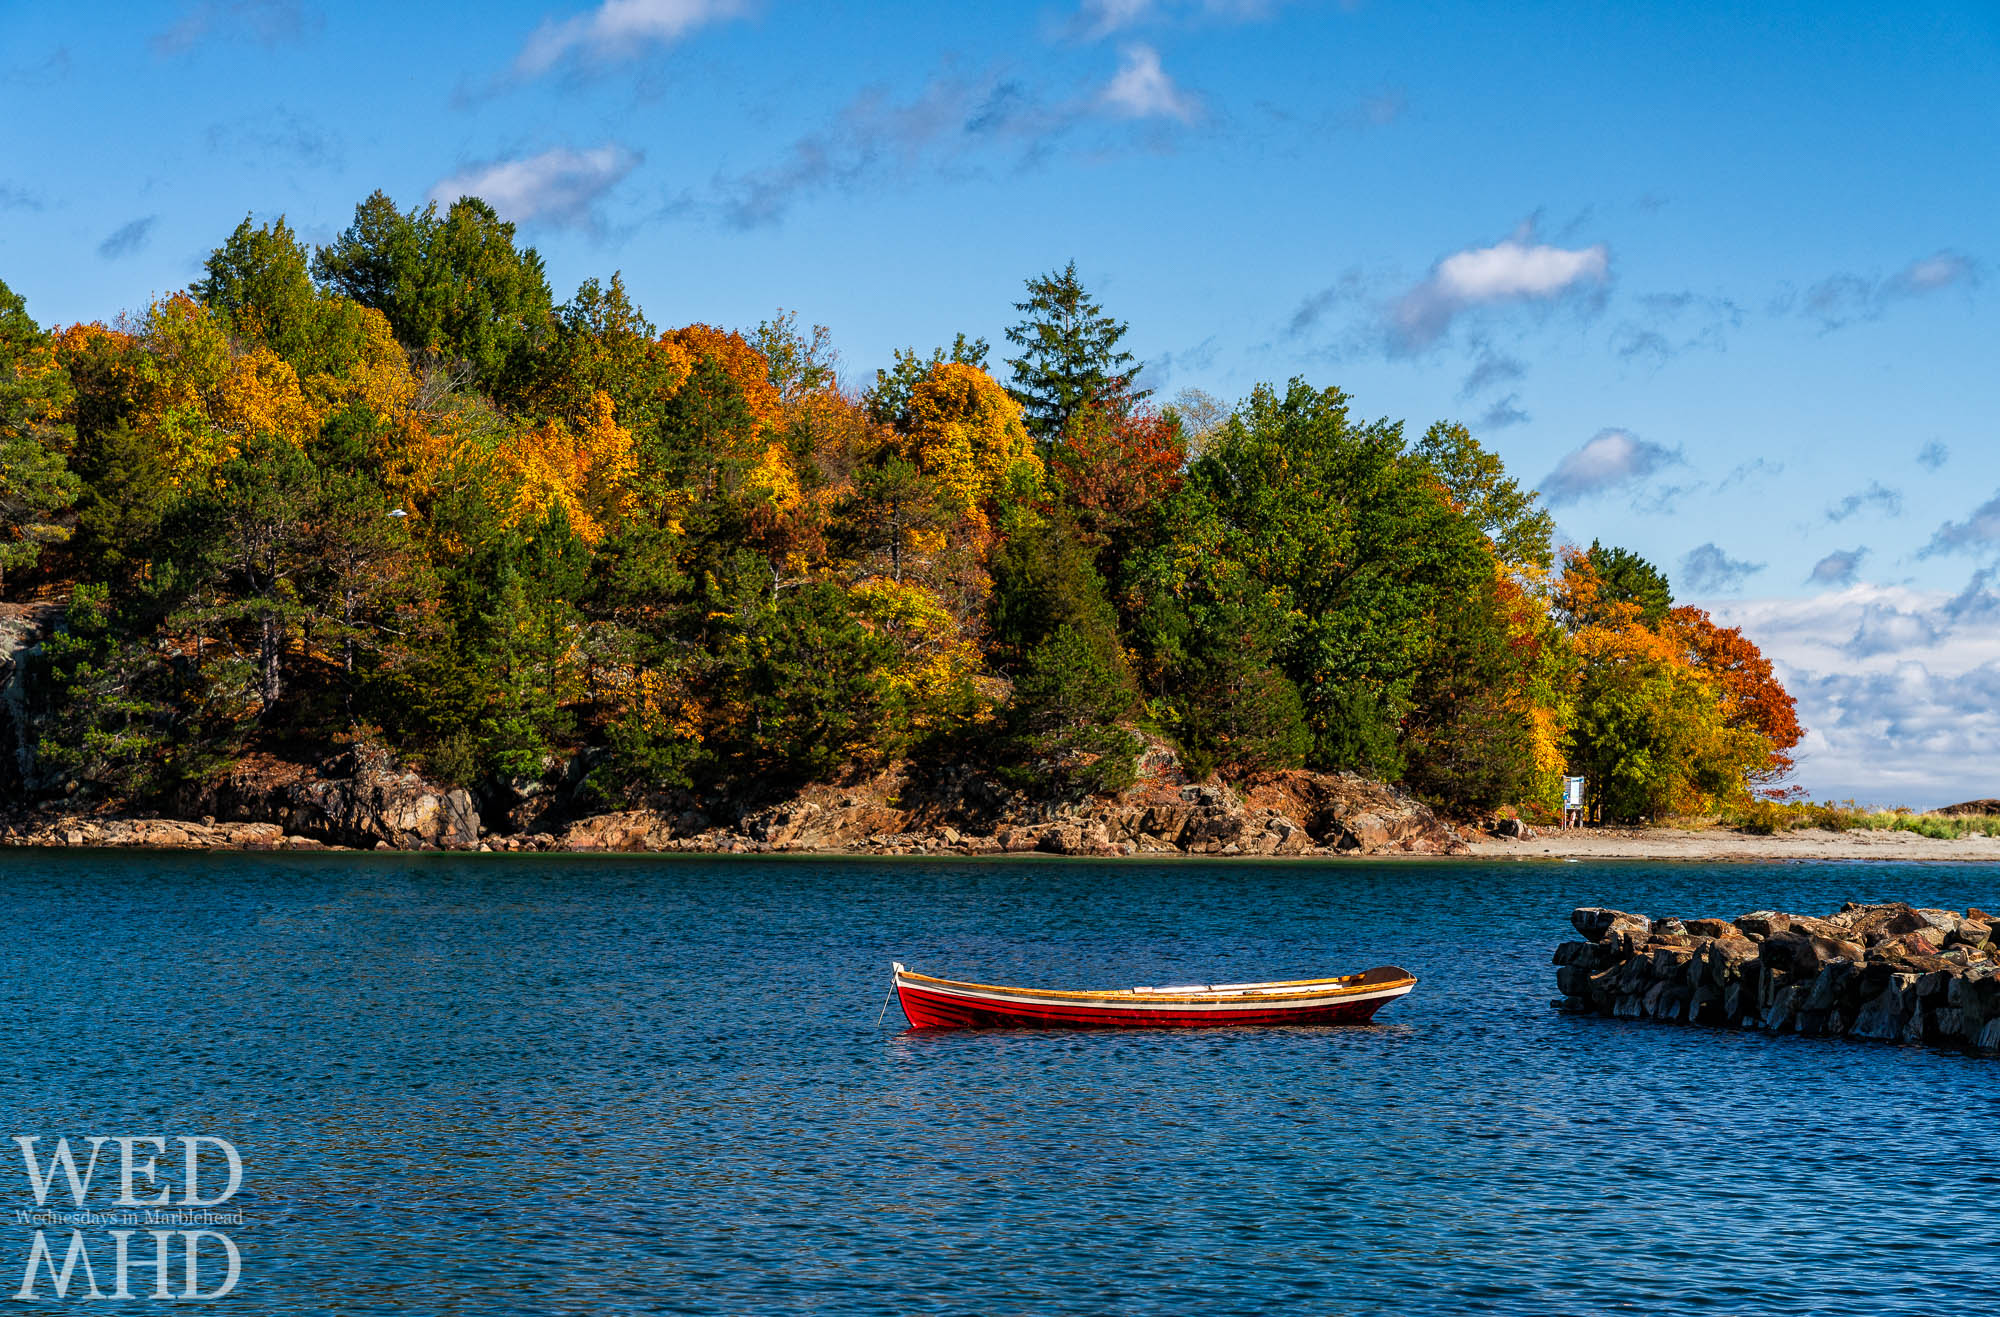 Peak color arrives on Brown's Island with a red skiff floating in the waters of Little Harbor near the high tide mark